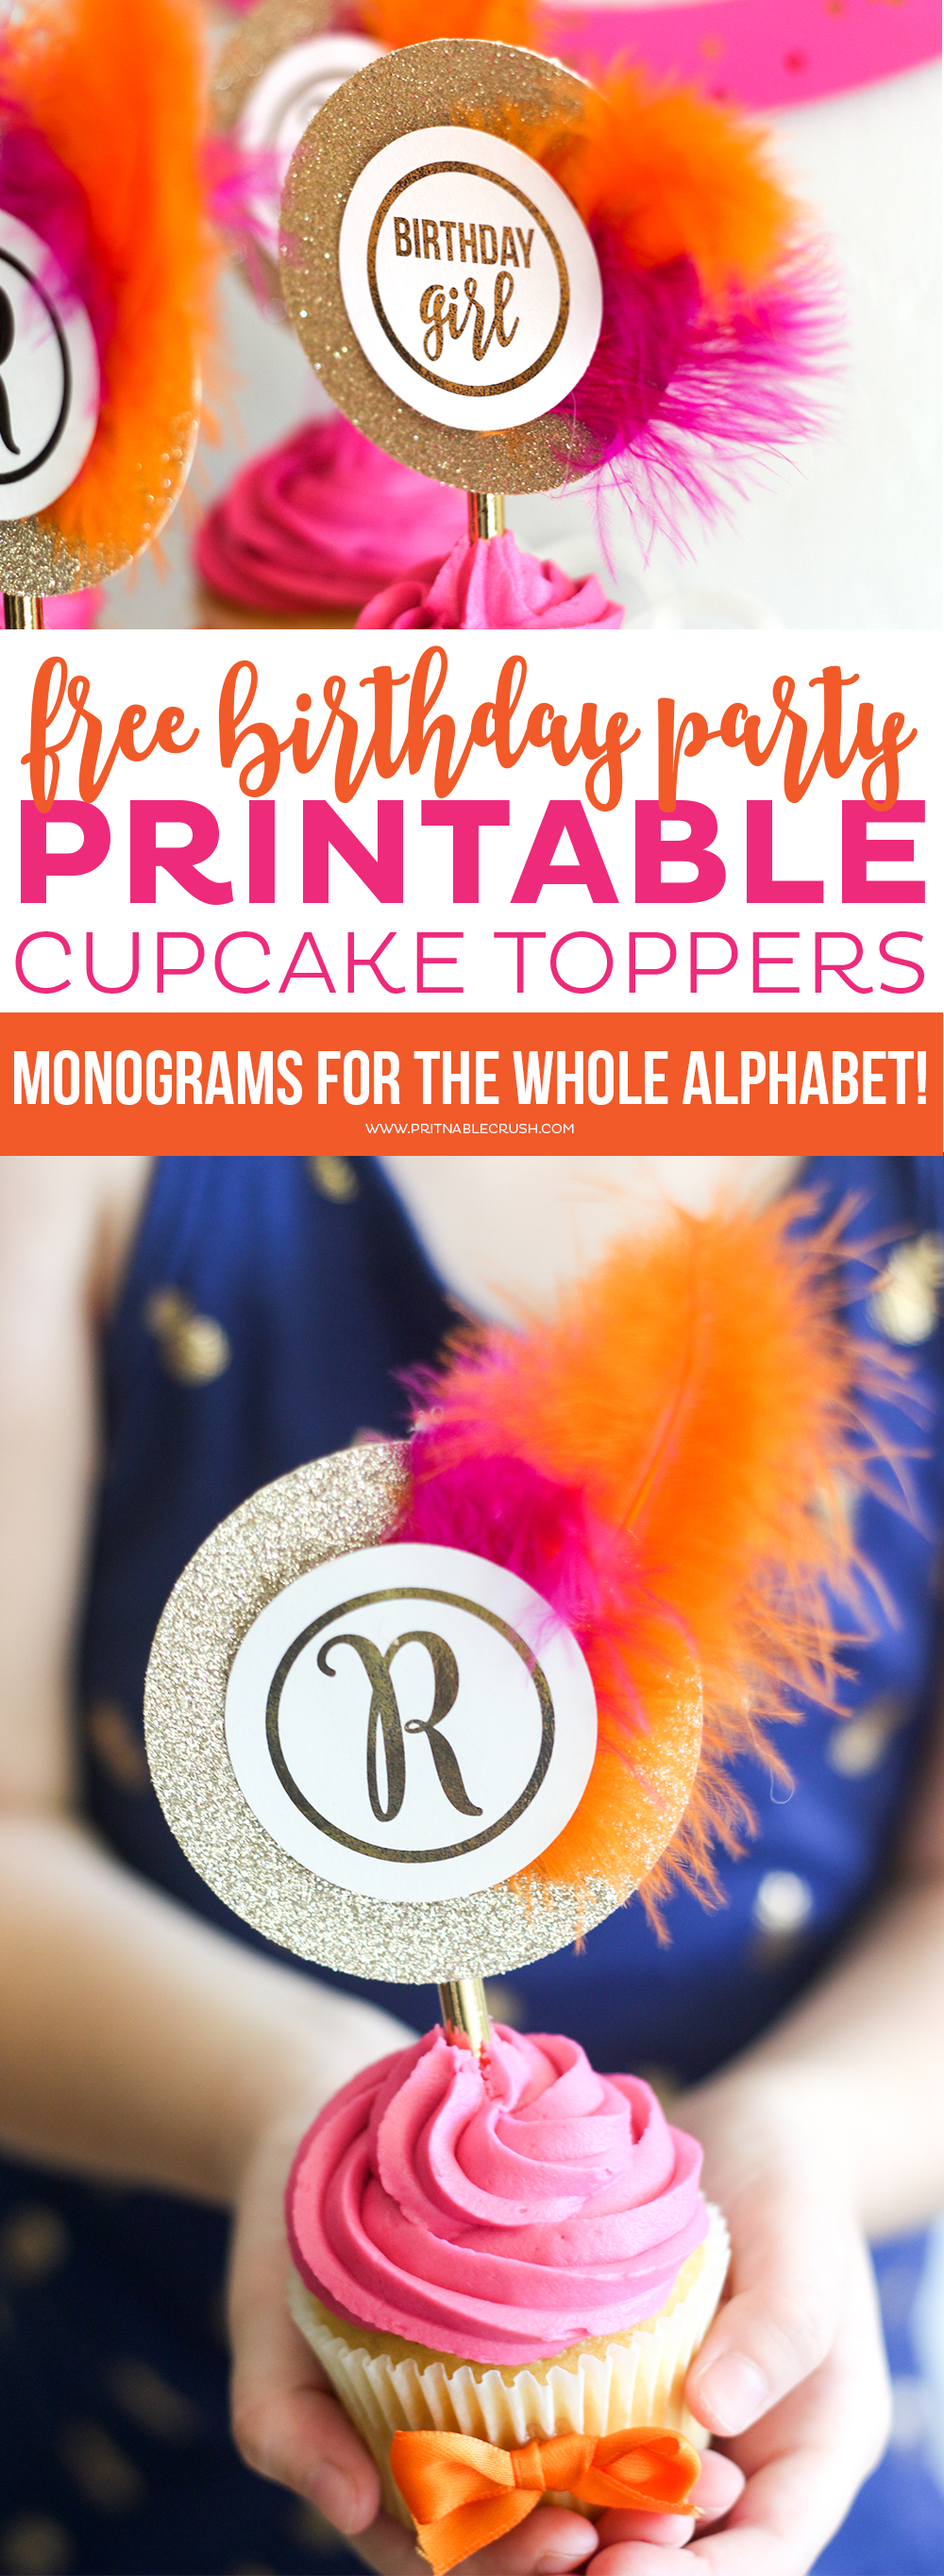 http://printablecrush.com/wp-content/uploads/2016/07/Monogram-Girl-Birthday-Party-35.jpg